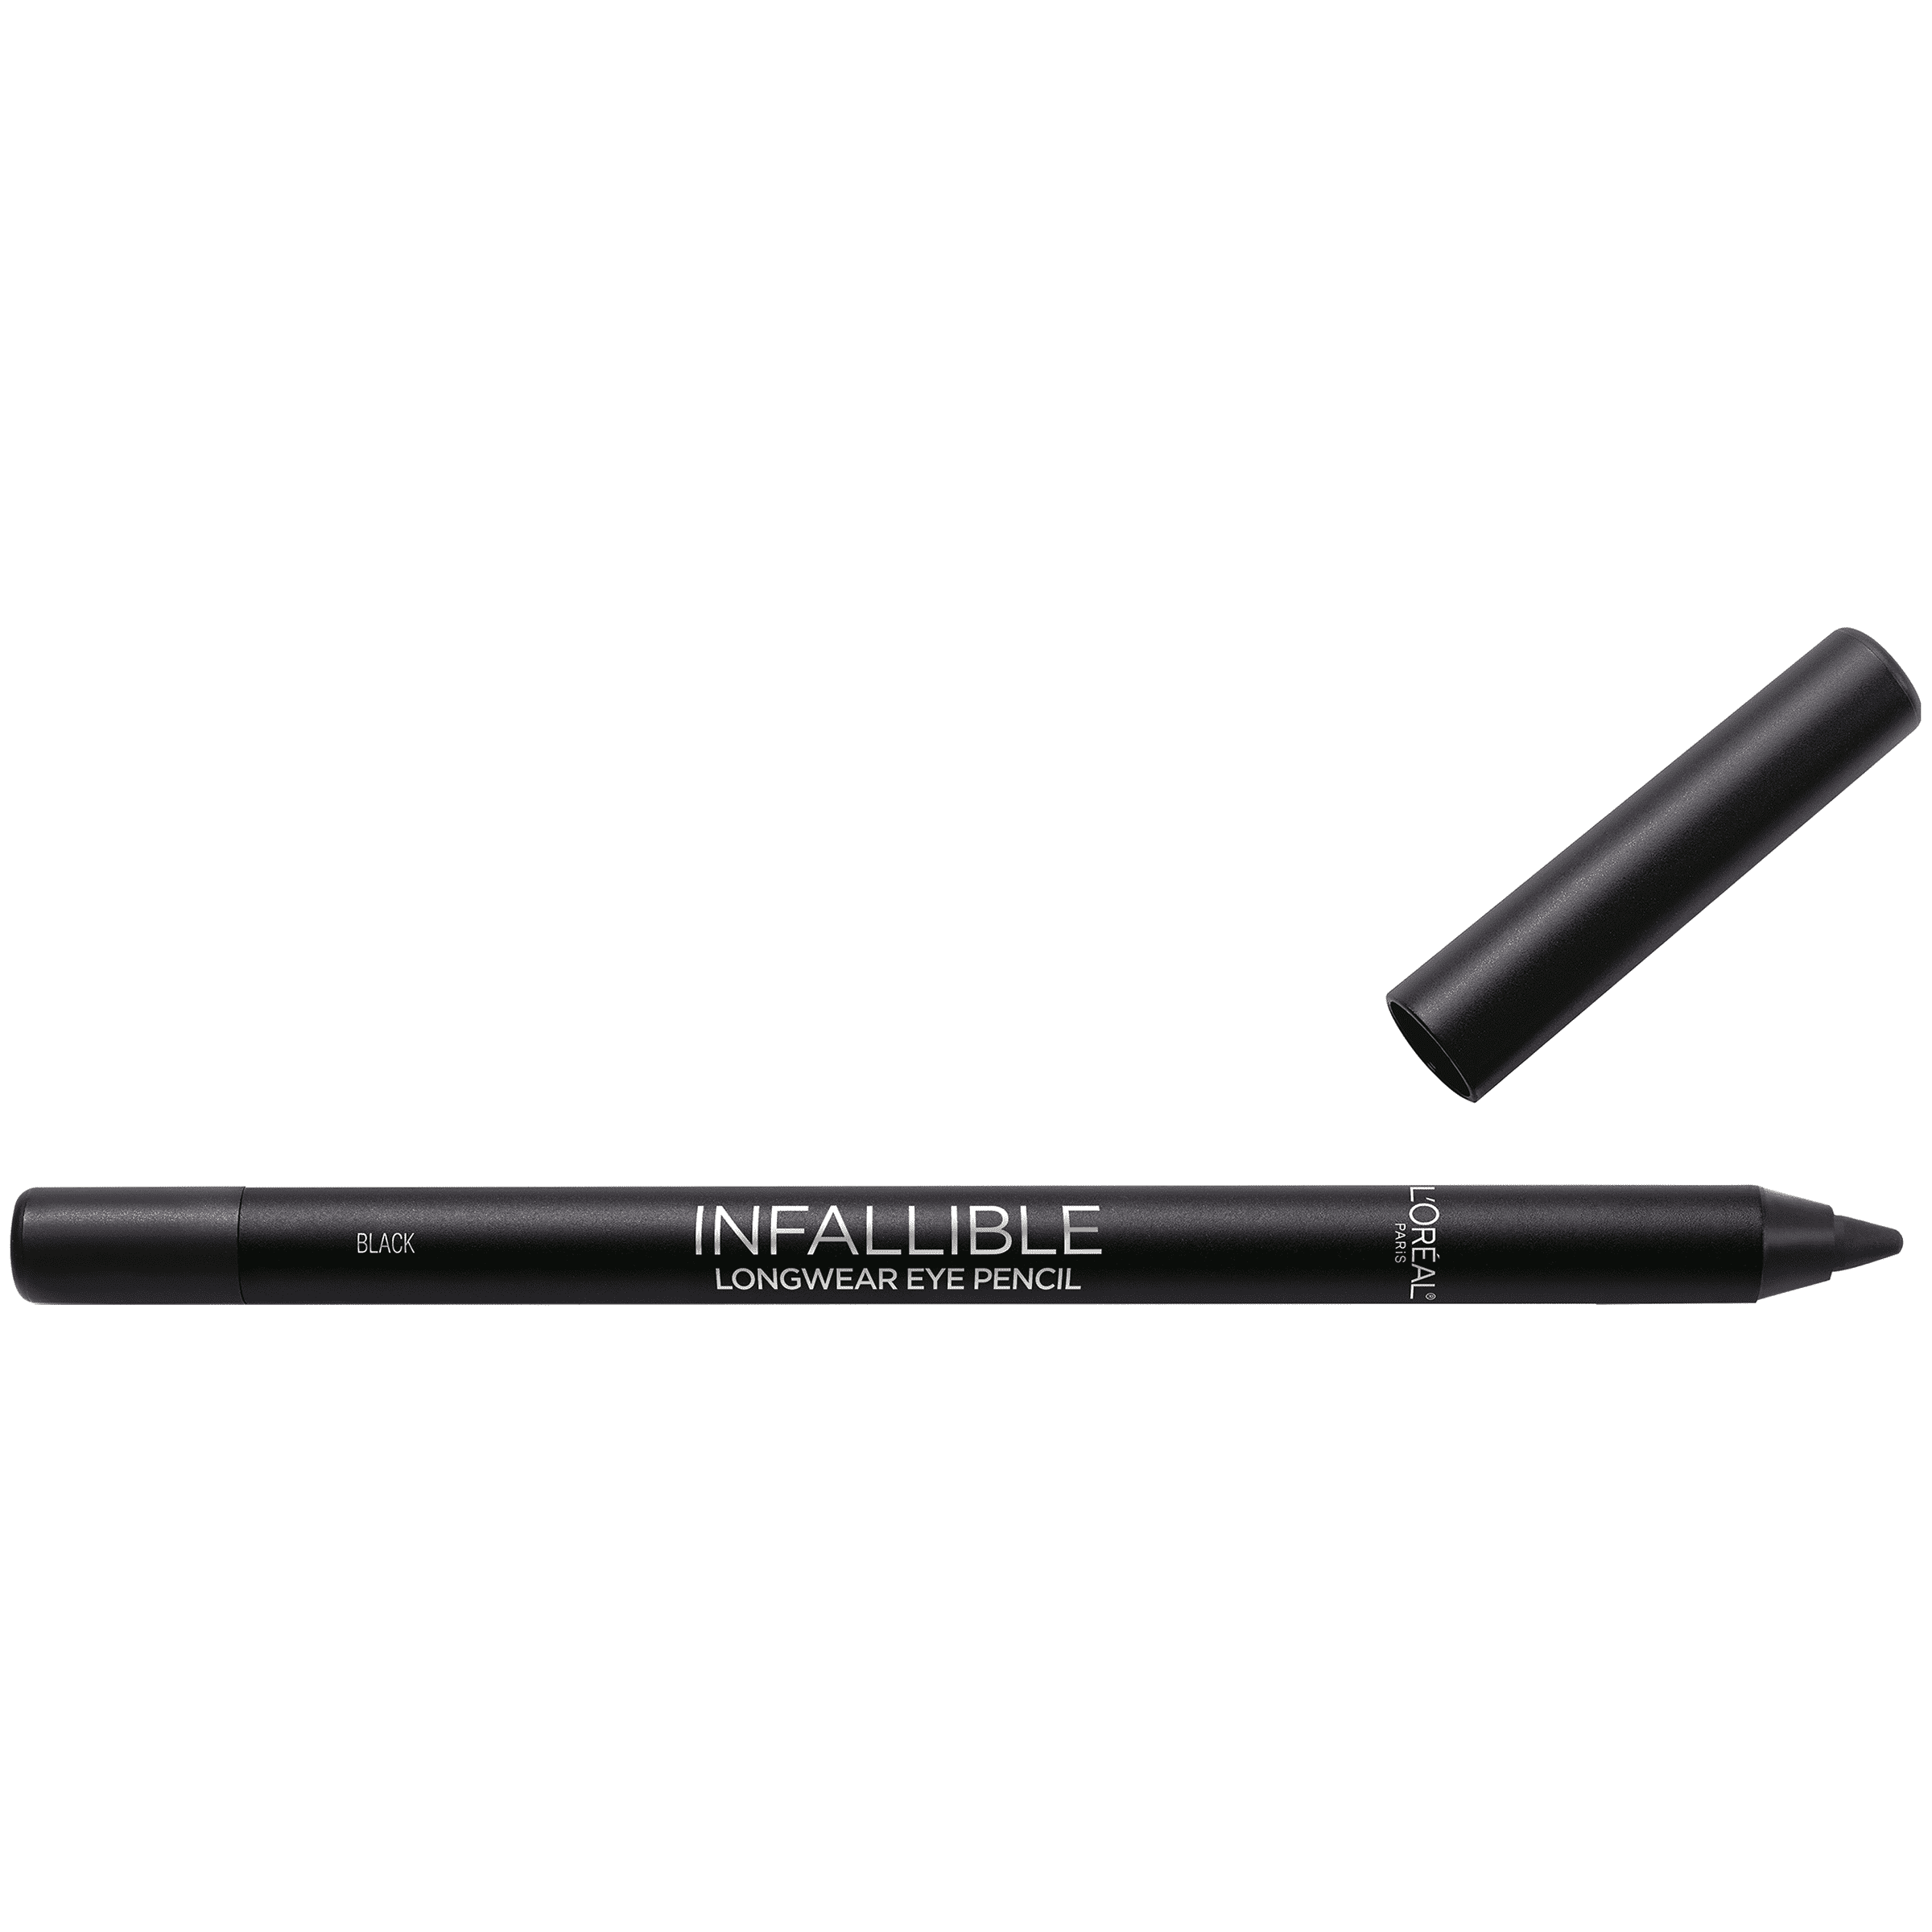 L'Oreal Paris Infallible Pro-Last Eyeliner Waterproof Pencil